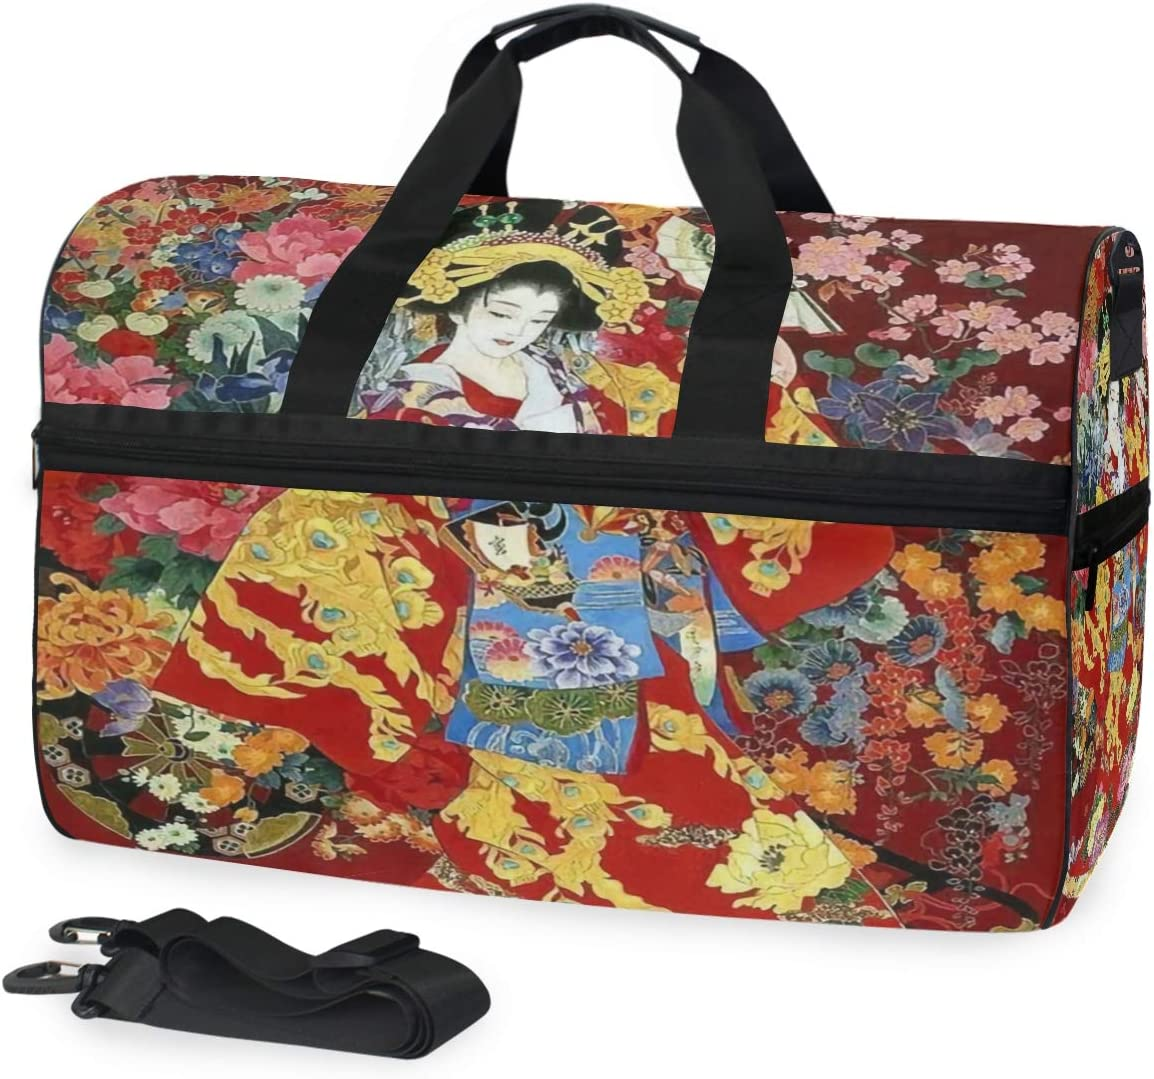 MUOOUM Japanese Geisha Girl Large Duffle Bags Sports Gym Bag with Shoes Compartment for Men and Women